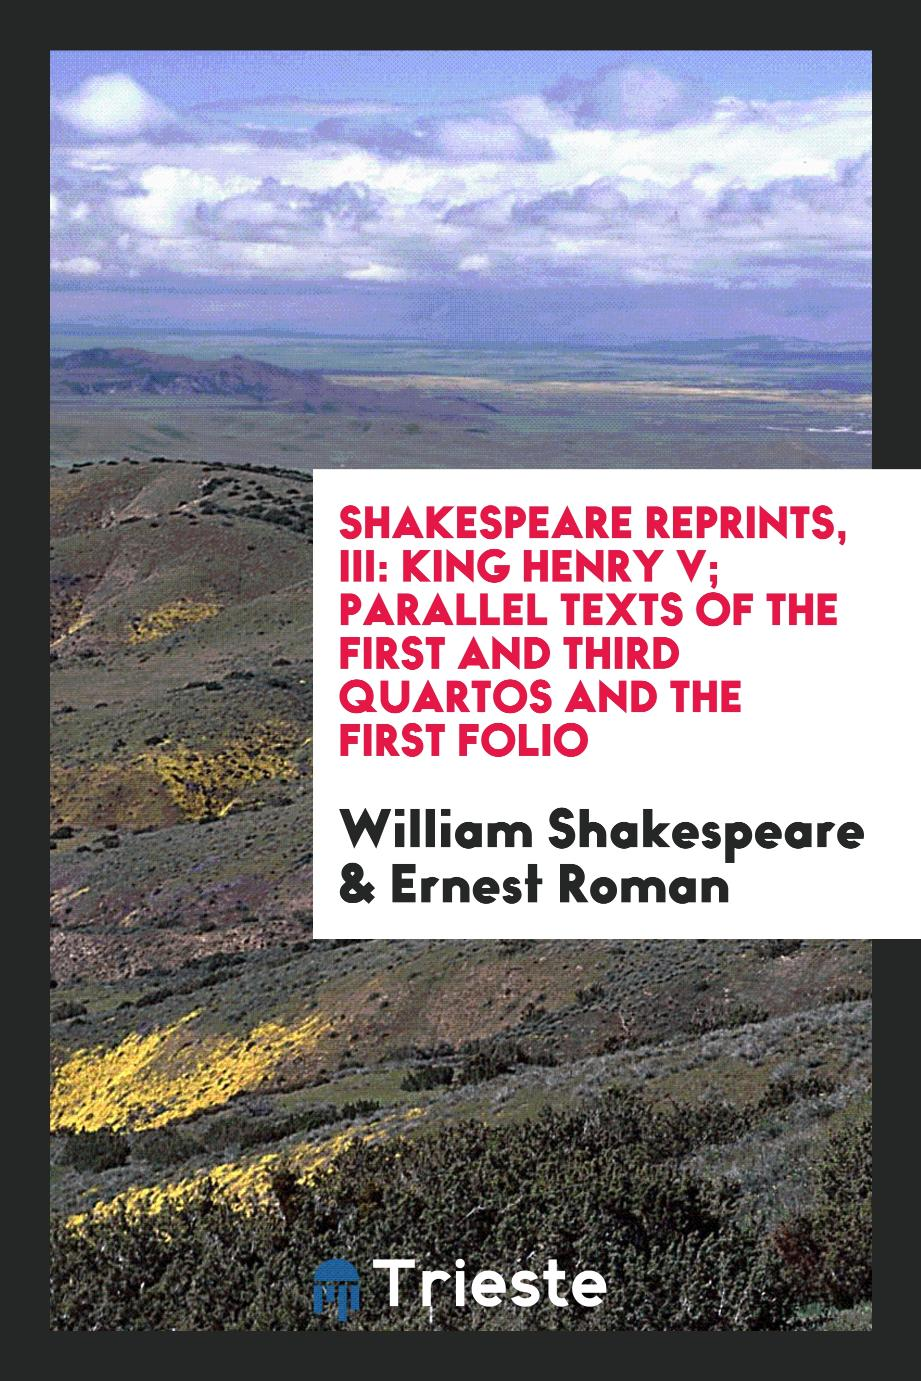 Shakespeare Reprints, III: King Henry V; Parallel Texts of the First and Third Quartos and the First Folio